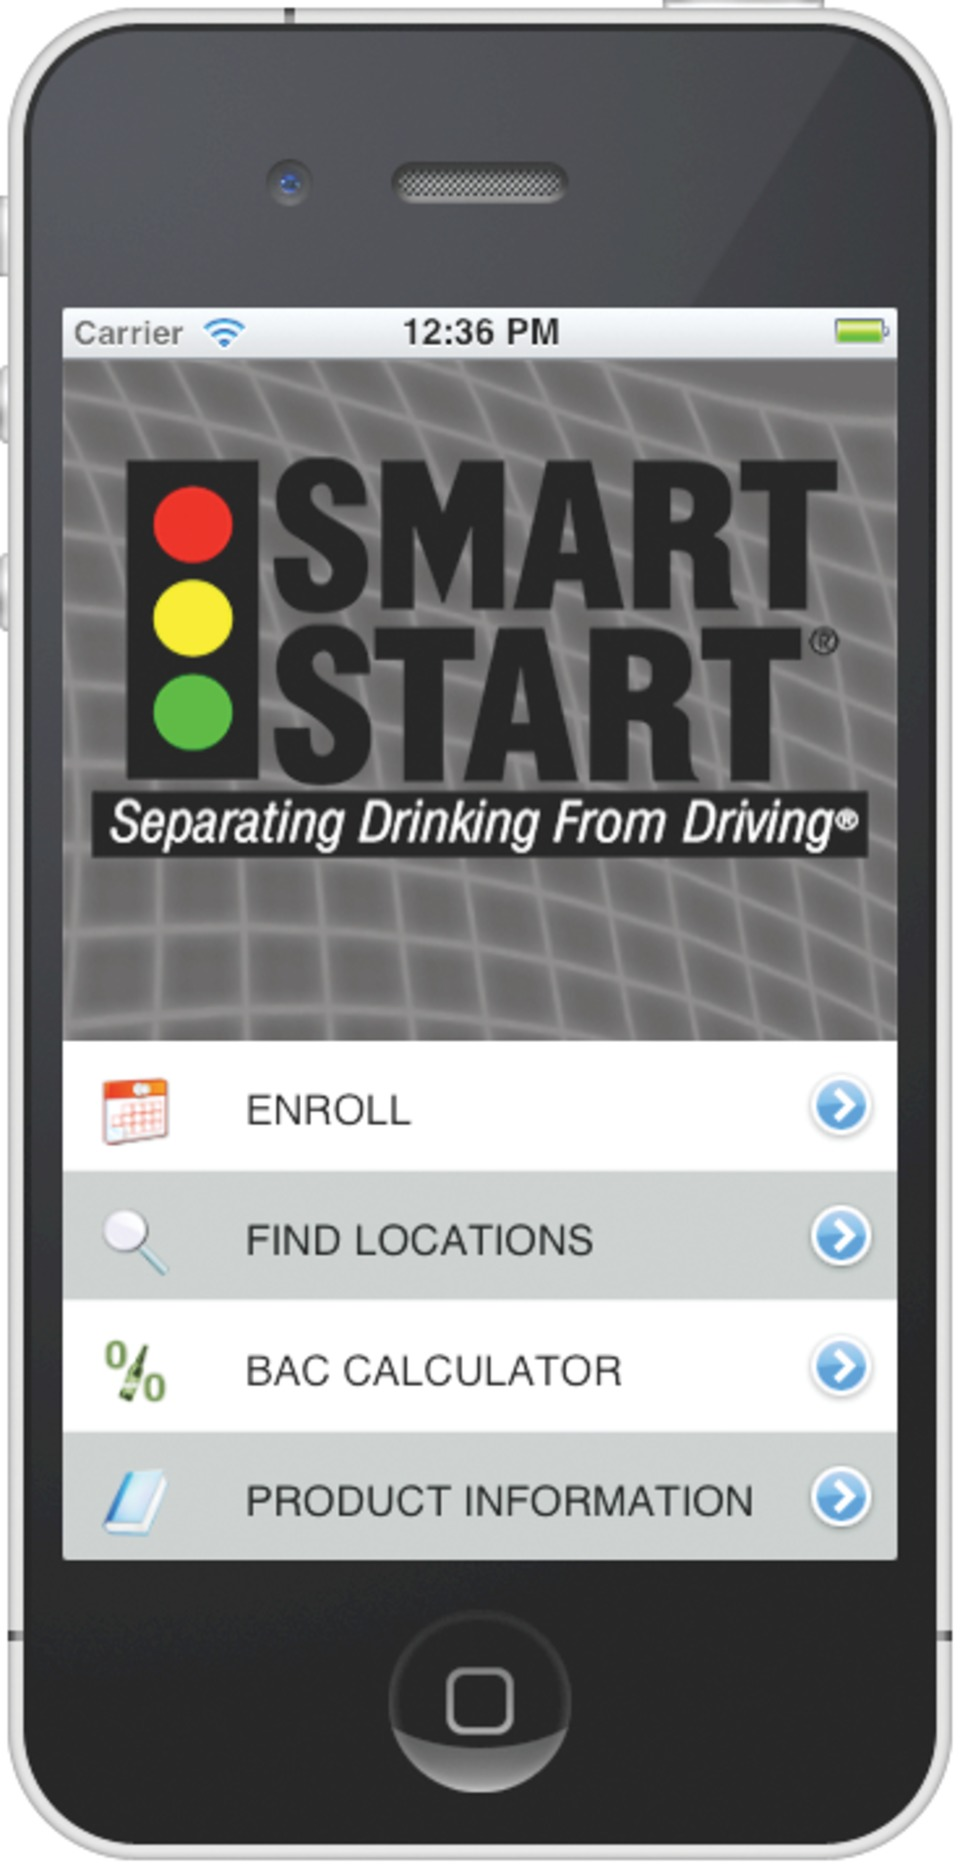 With Many States Implementing Strengthened Dwi Dui Laws In 2017 Smart Start Inc Expects To See A Nationwide Increase Enrollment Its Ignition